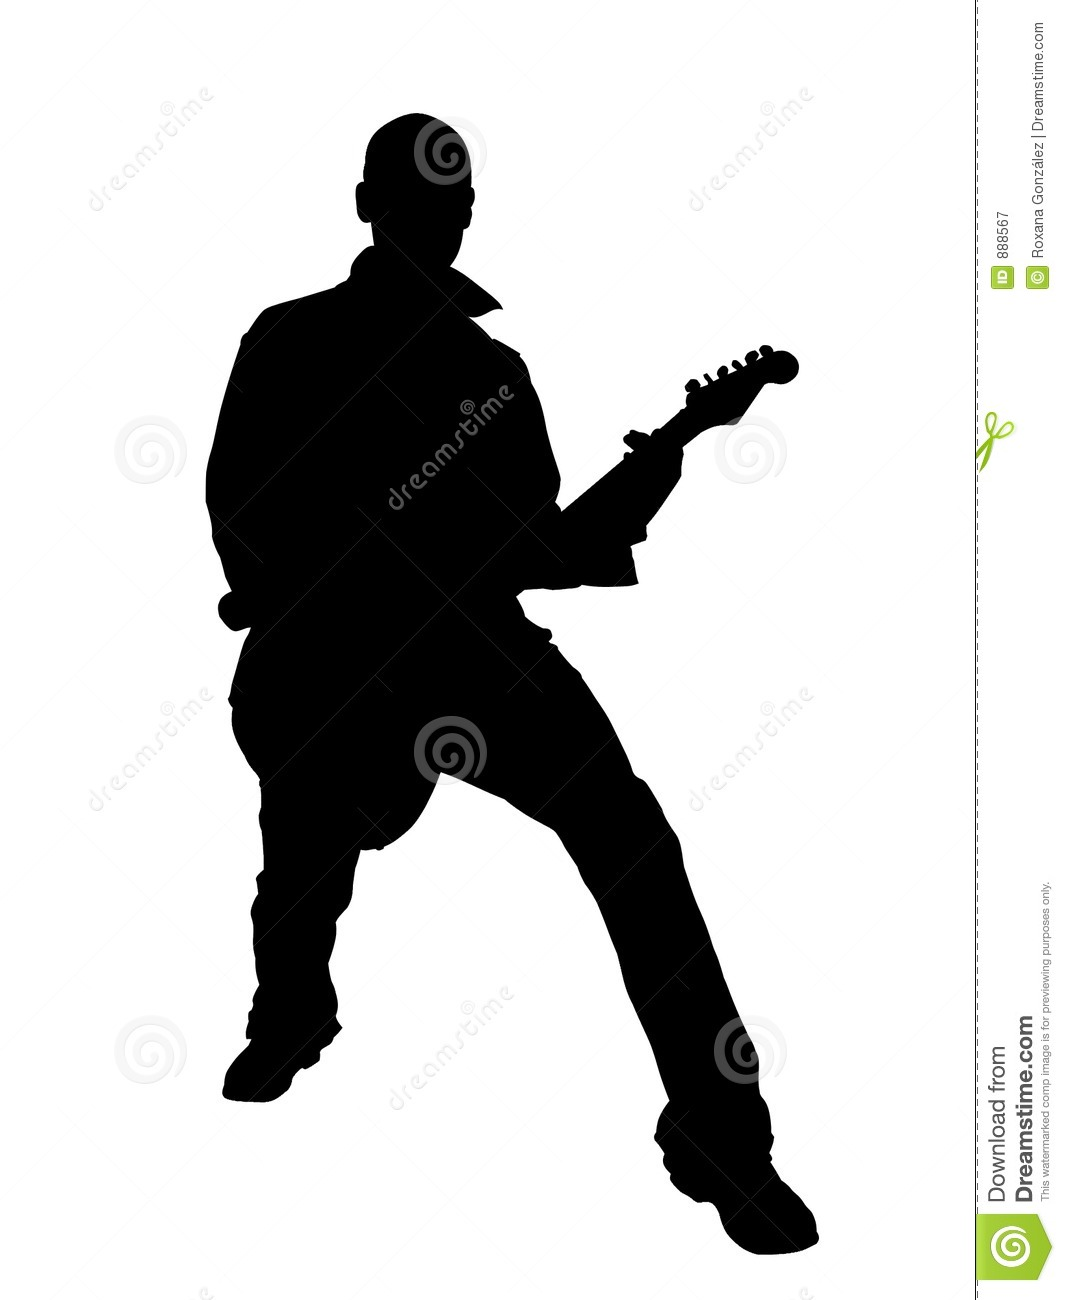 Guitarist Silhouette Royalty Free Stock Photography ...